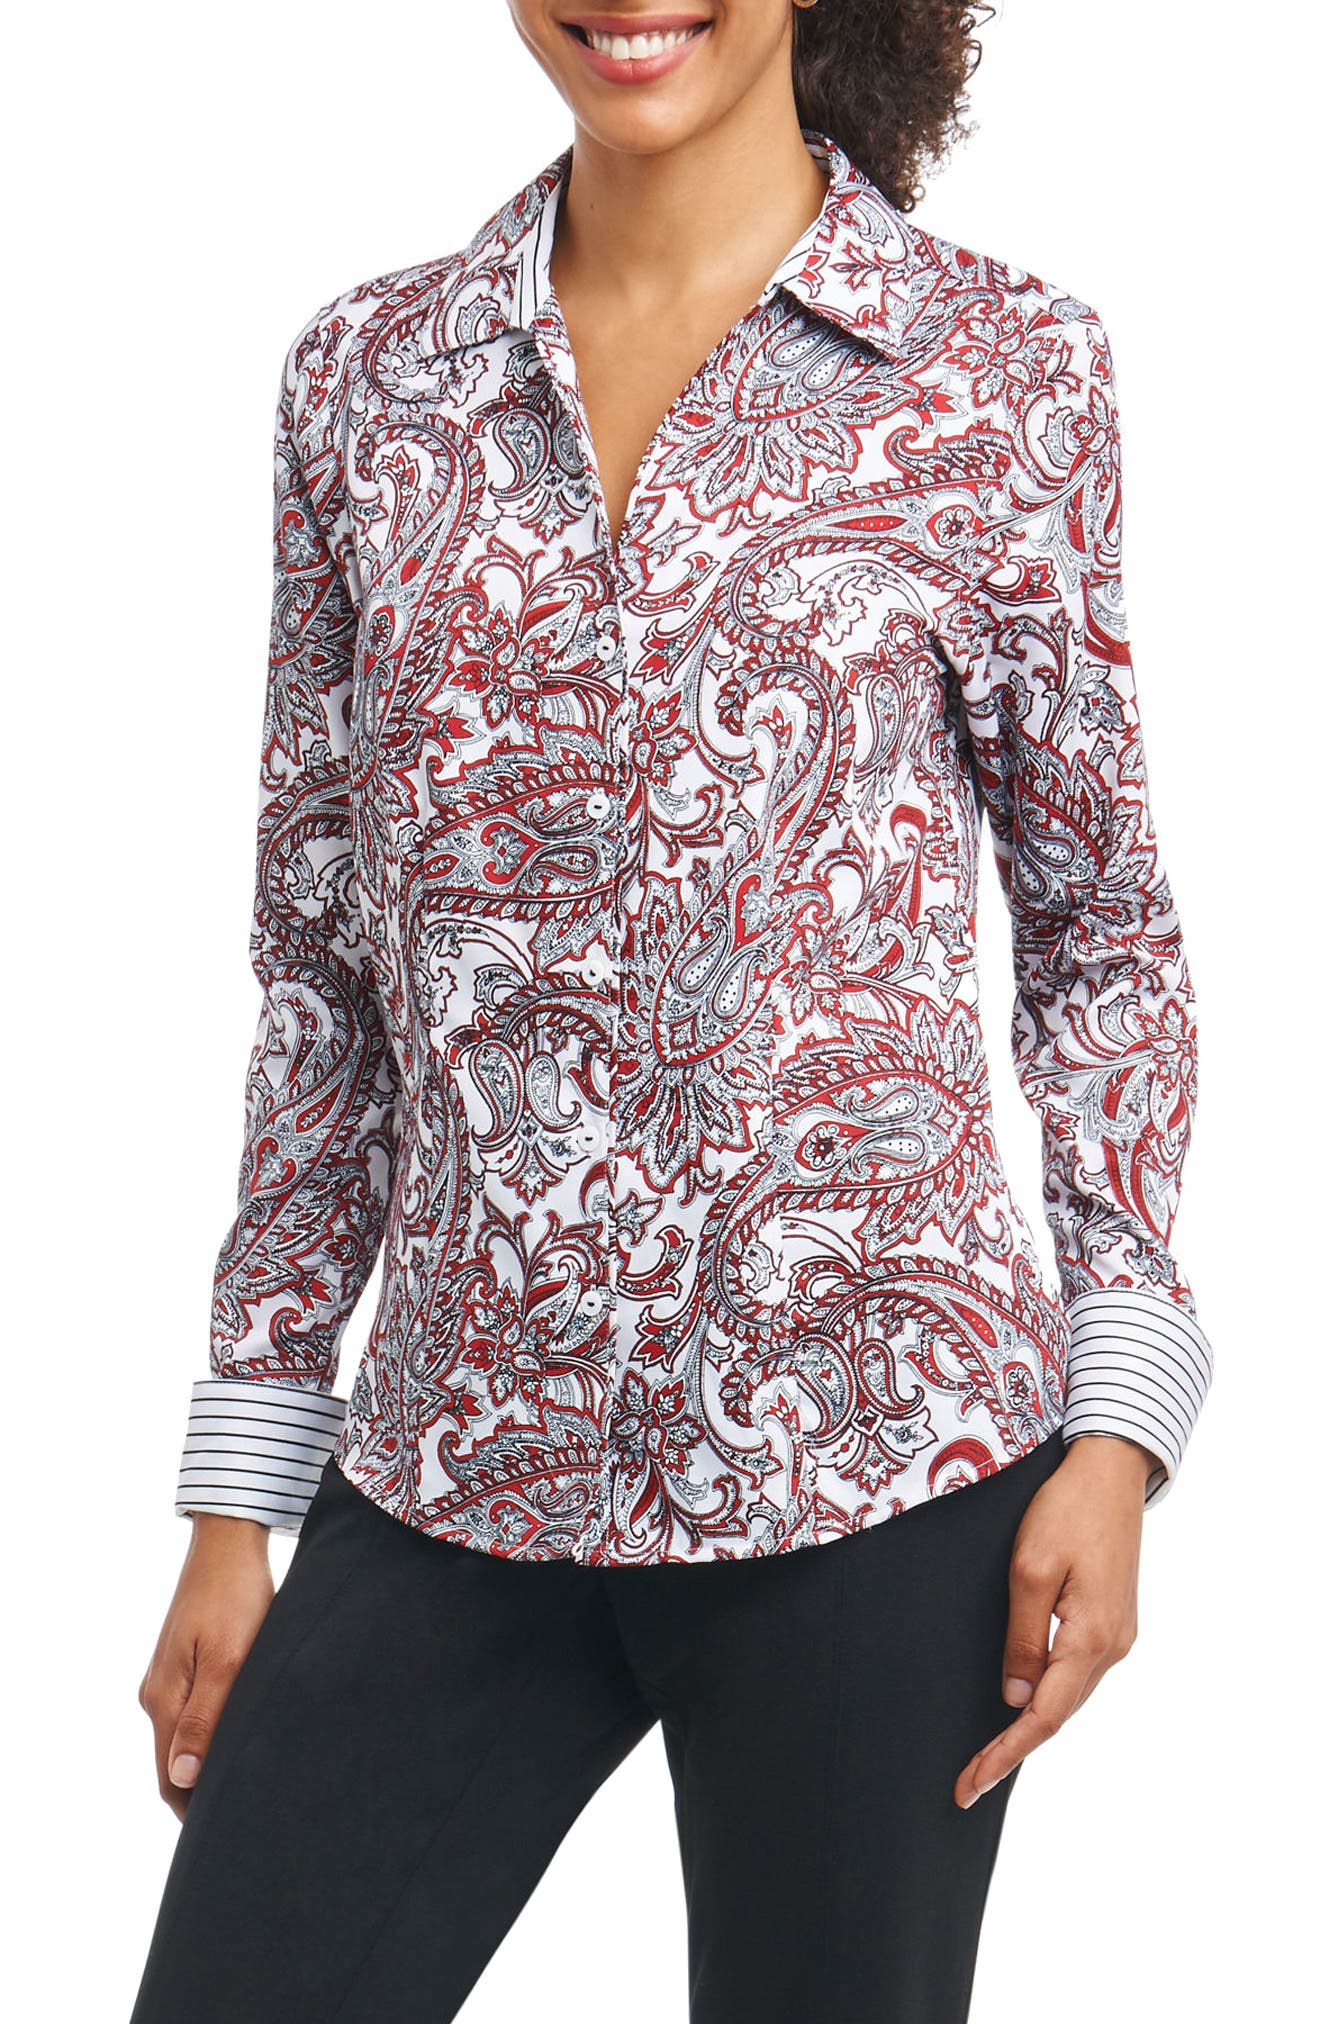 Lauren Romantic Paisley Shirt,                             Main thumbnail 1, color,                             Multi